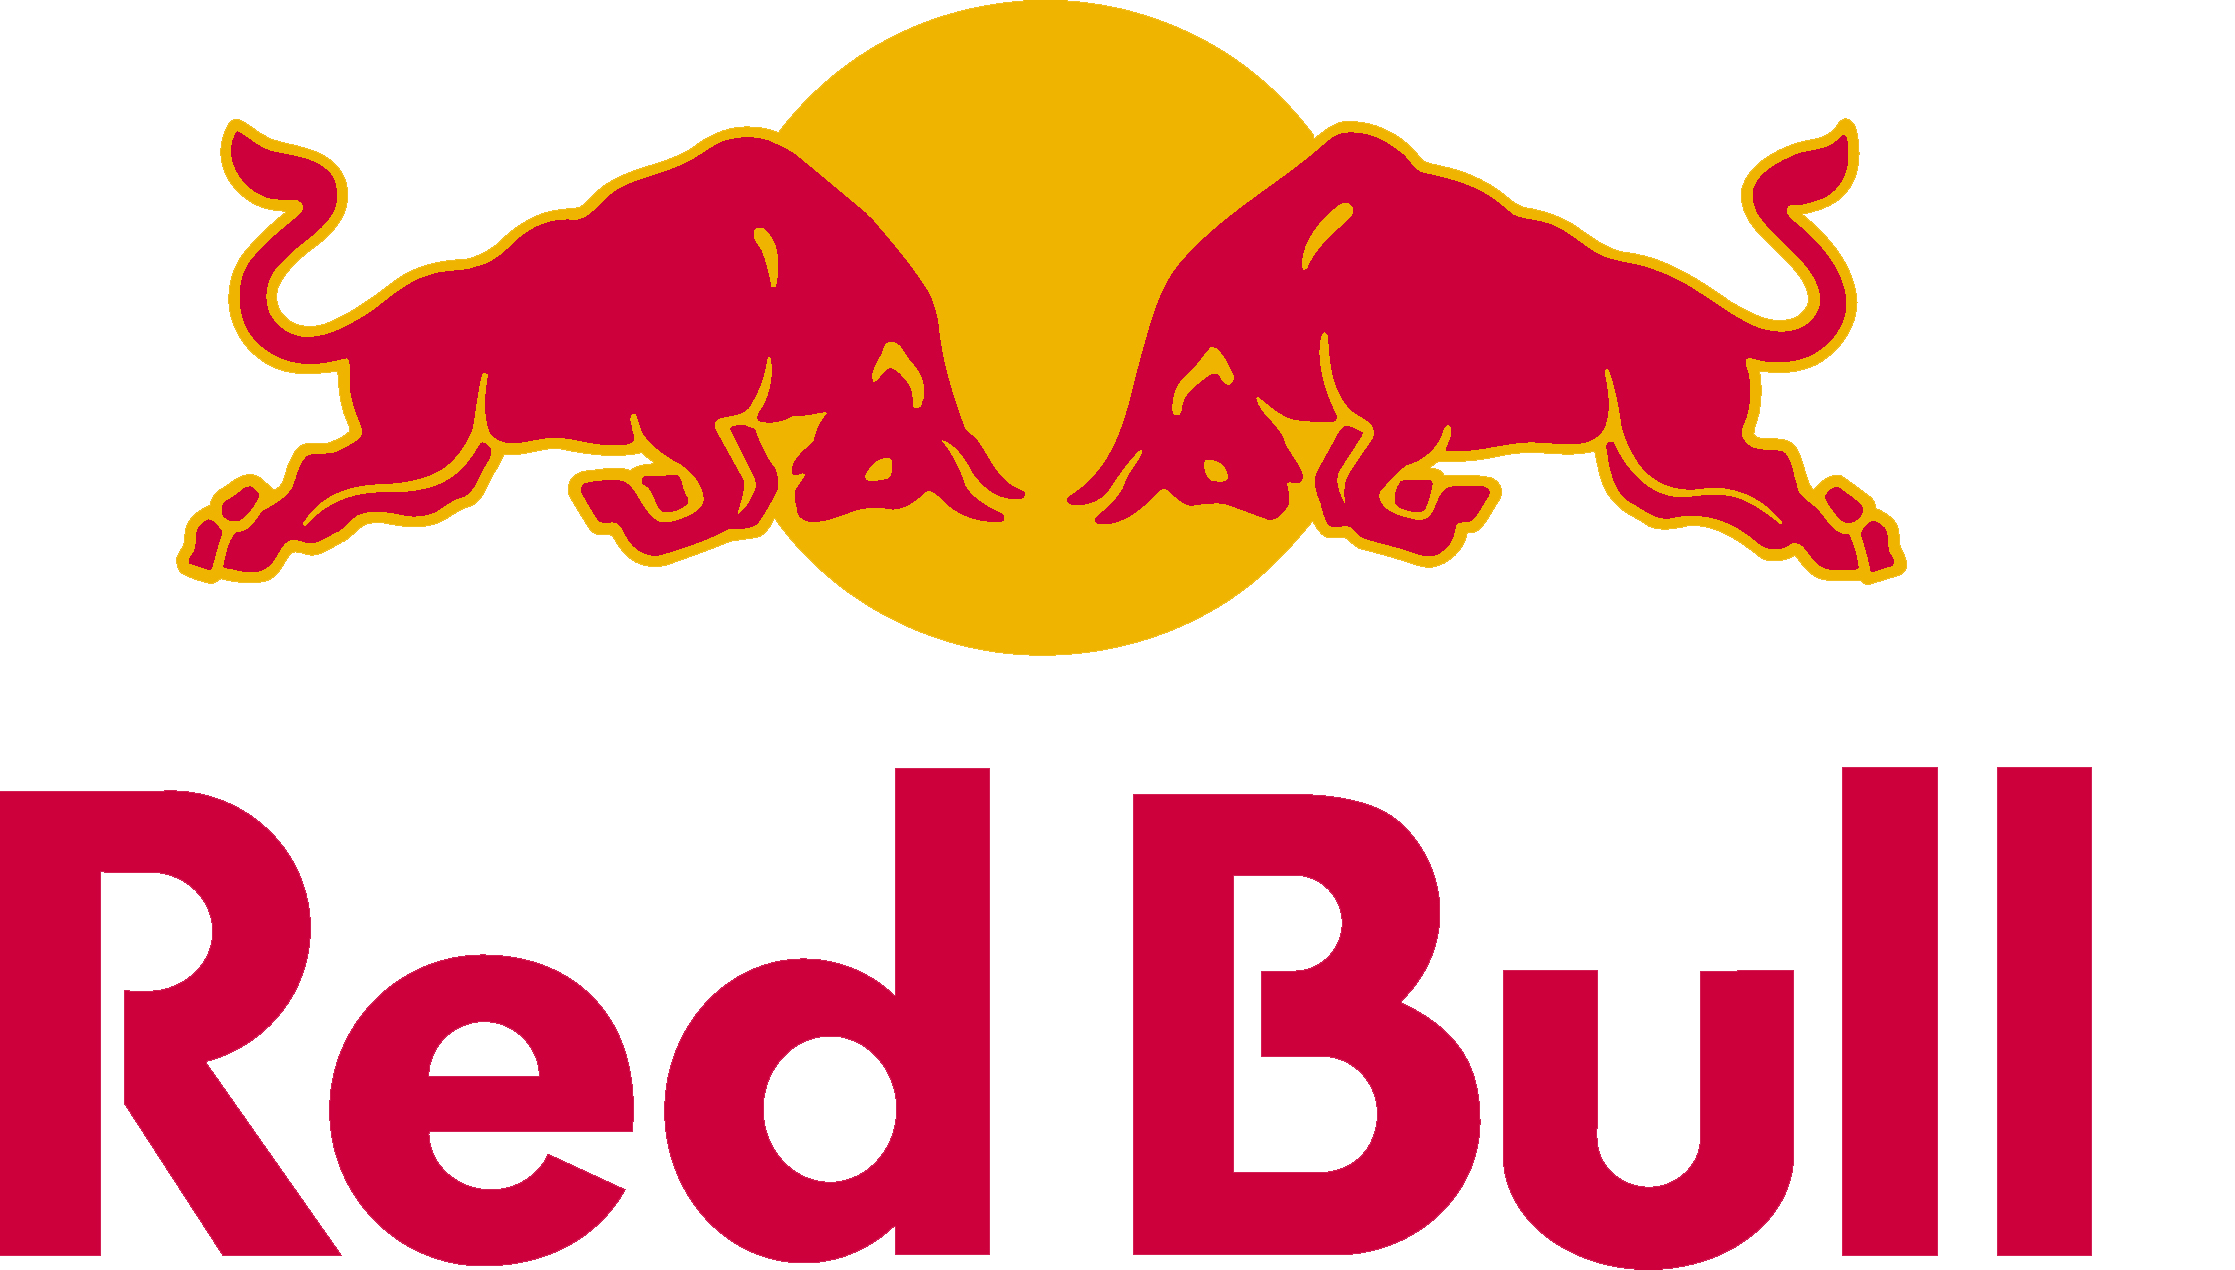 Red Bull Energy Drink has sponsored numerous drivers